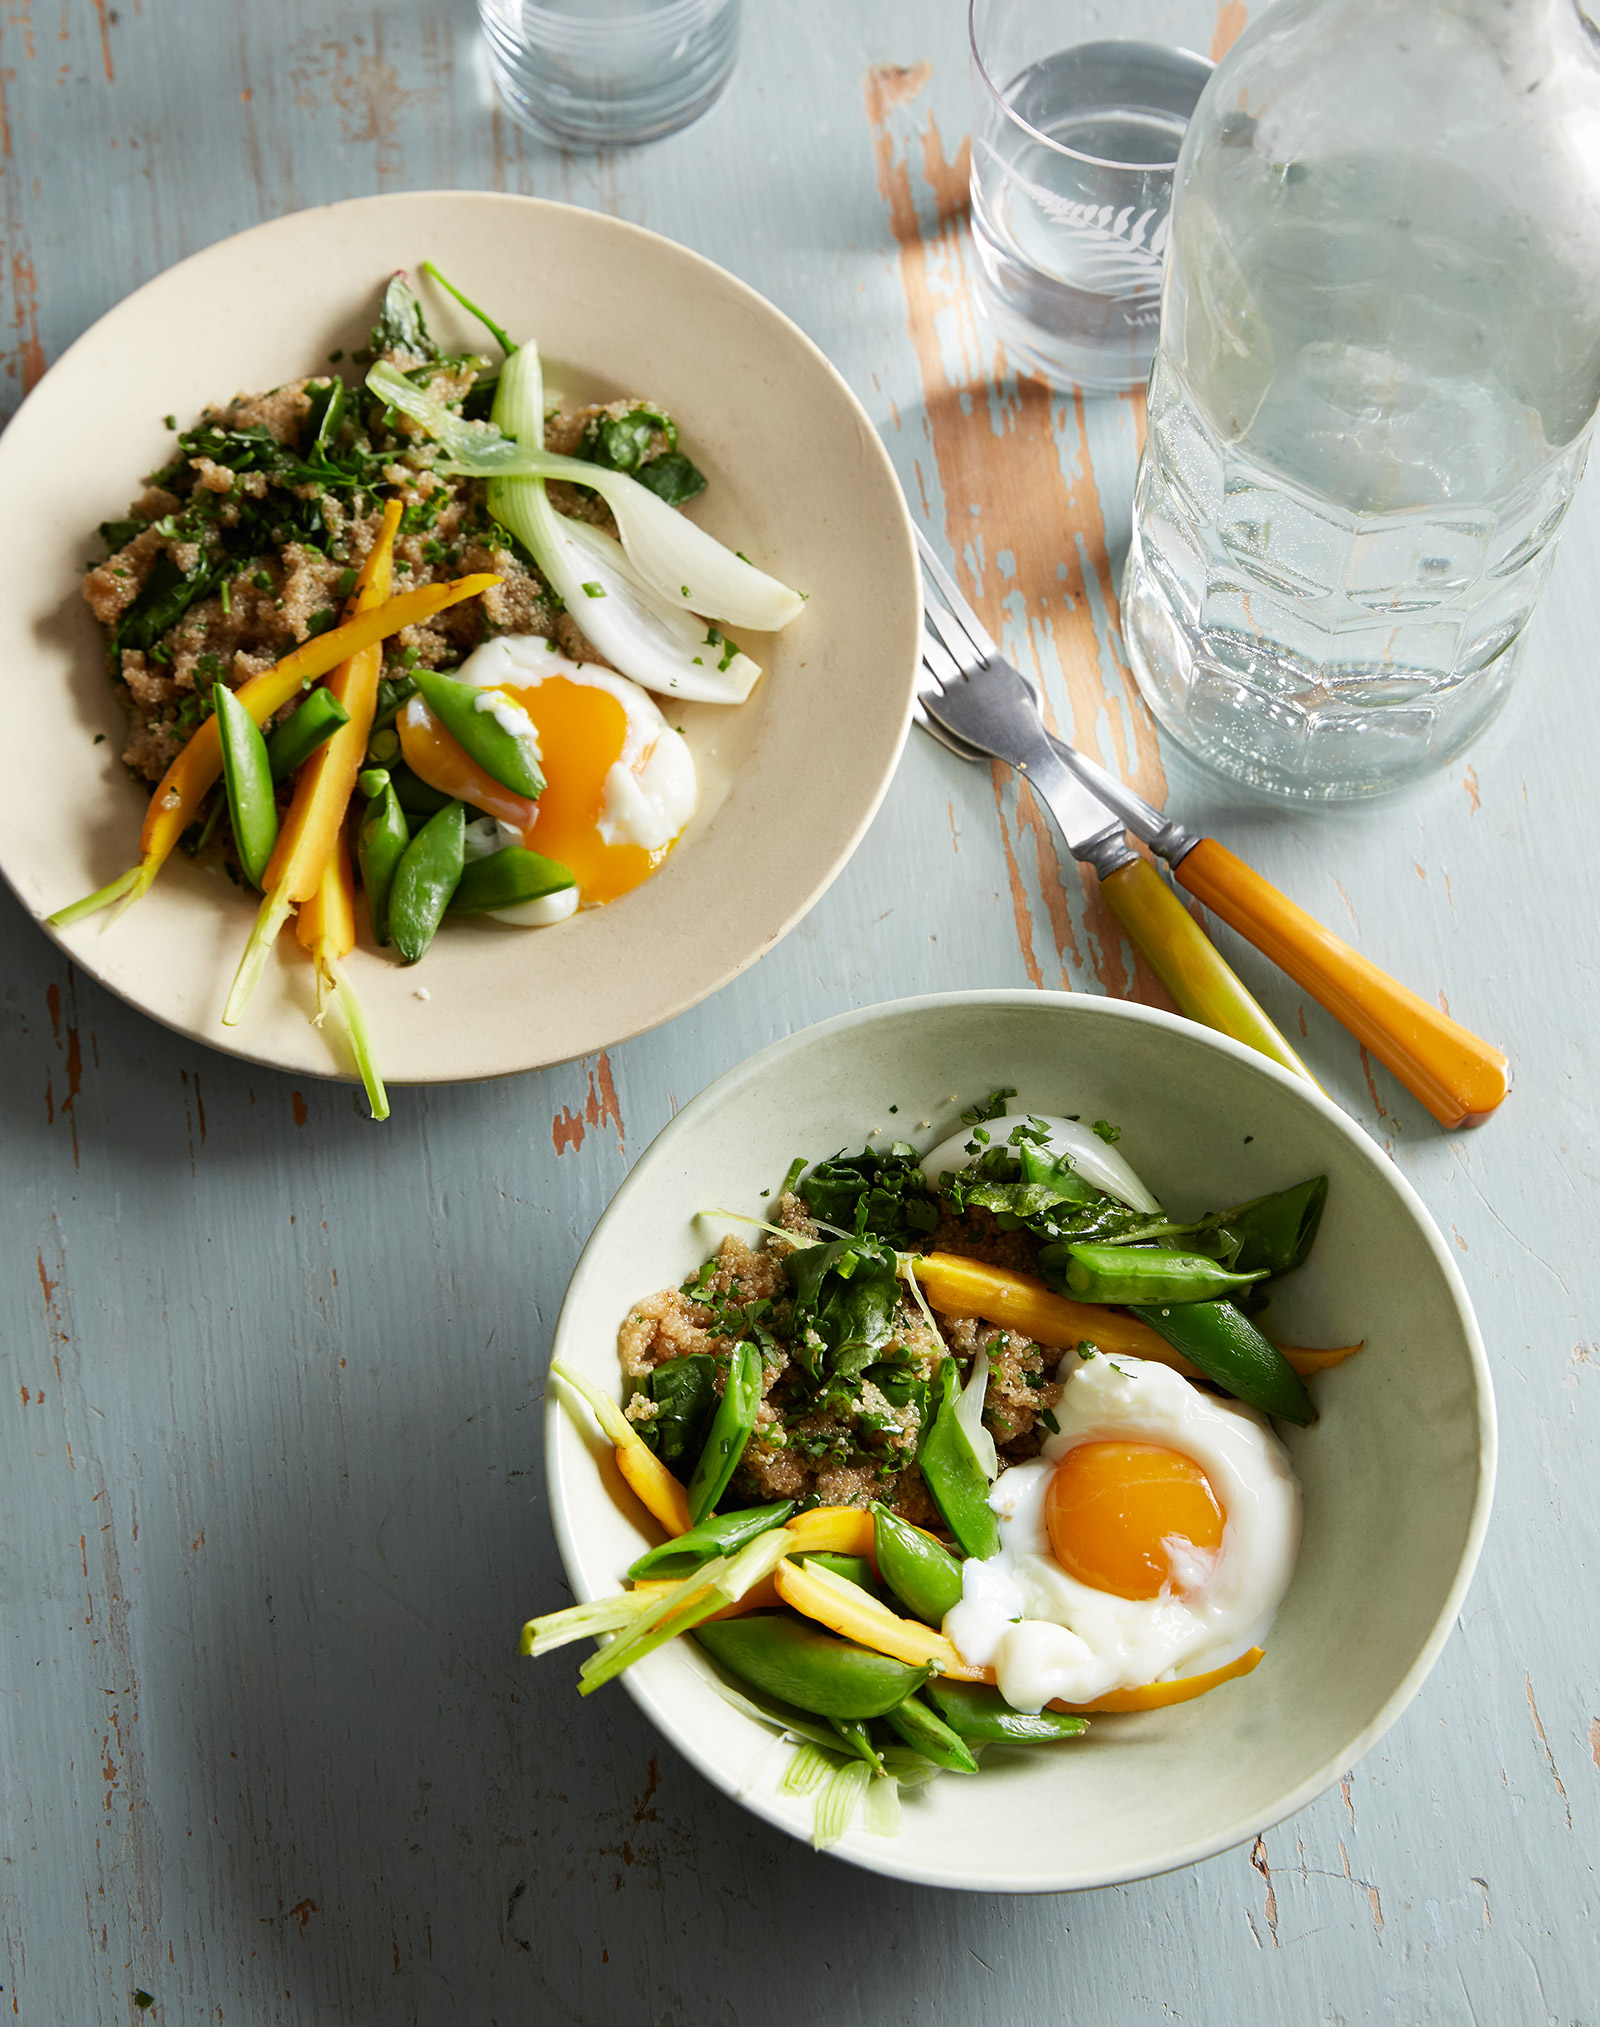 healthy weeknight dinner with spring vegetables grains and onzen tamago